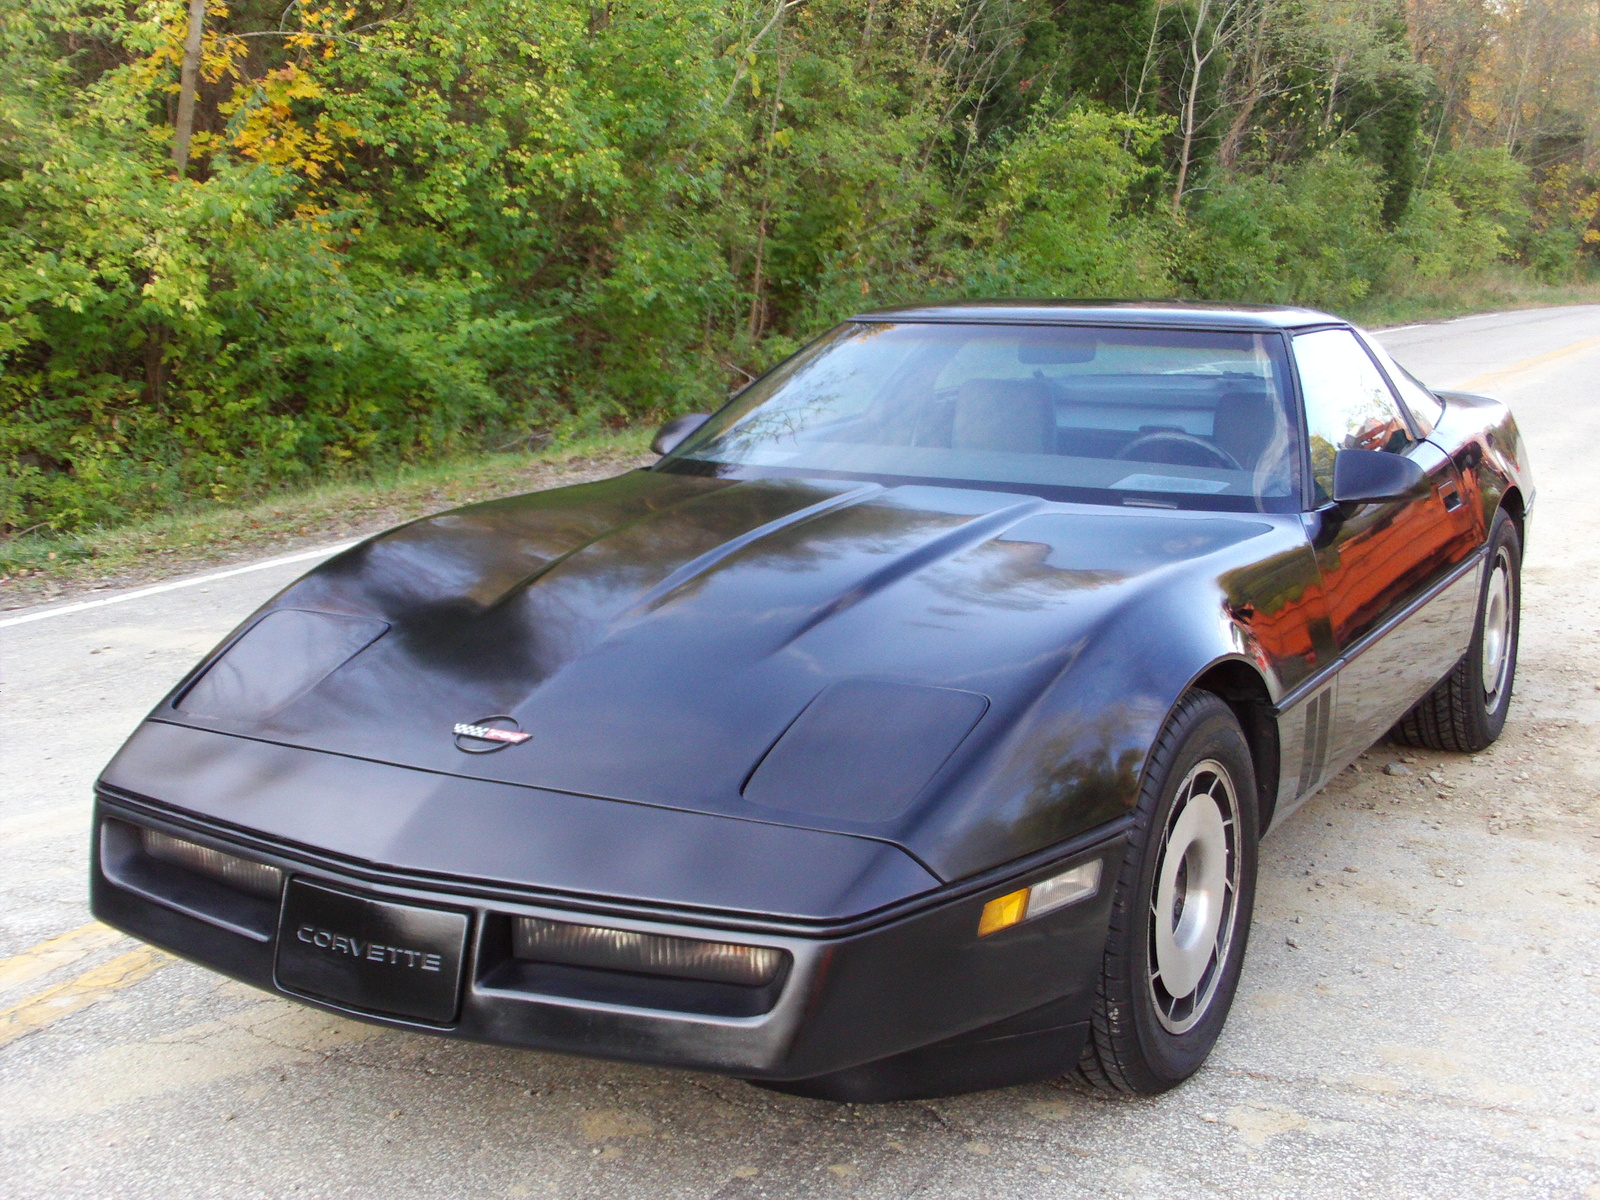 1985 Chevrolet Corvette Coupe picture